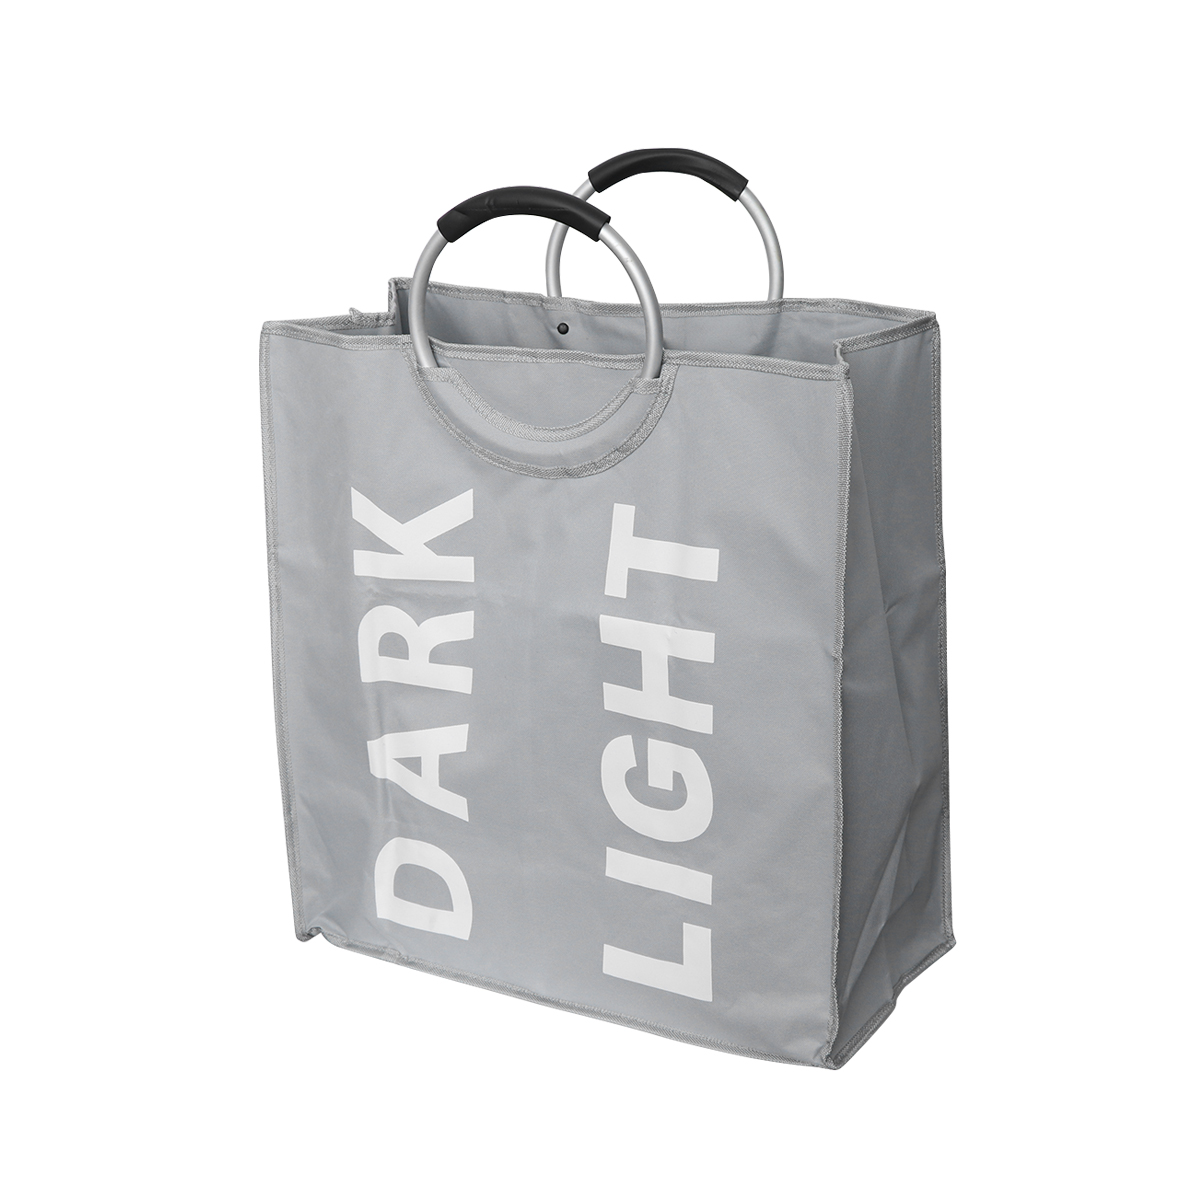 Foldable Laundry Bag Double Grid Materials Dirty Laundry Storage Children'S Toys Storage Household Square Storage Basket